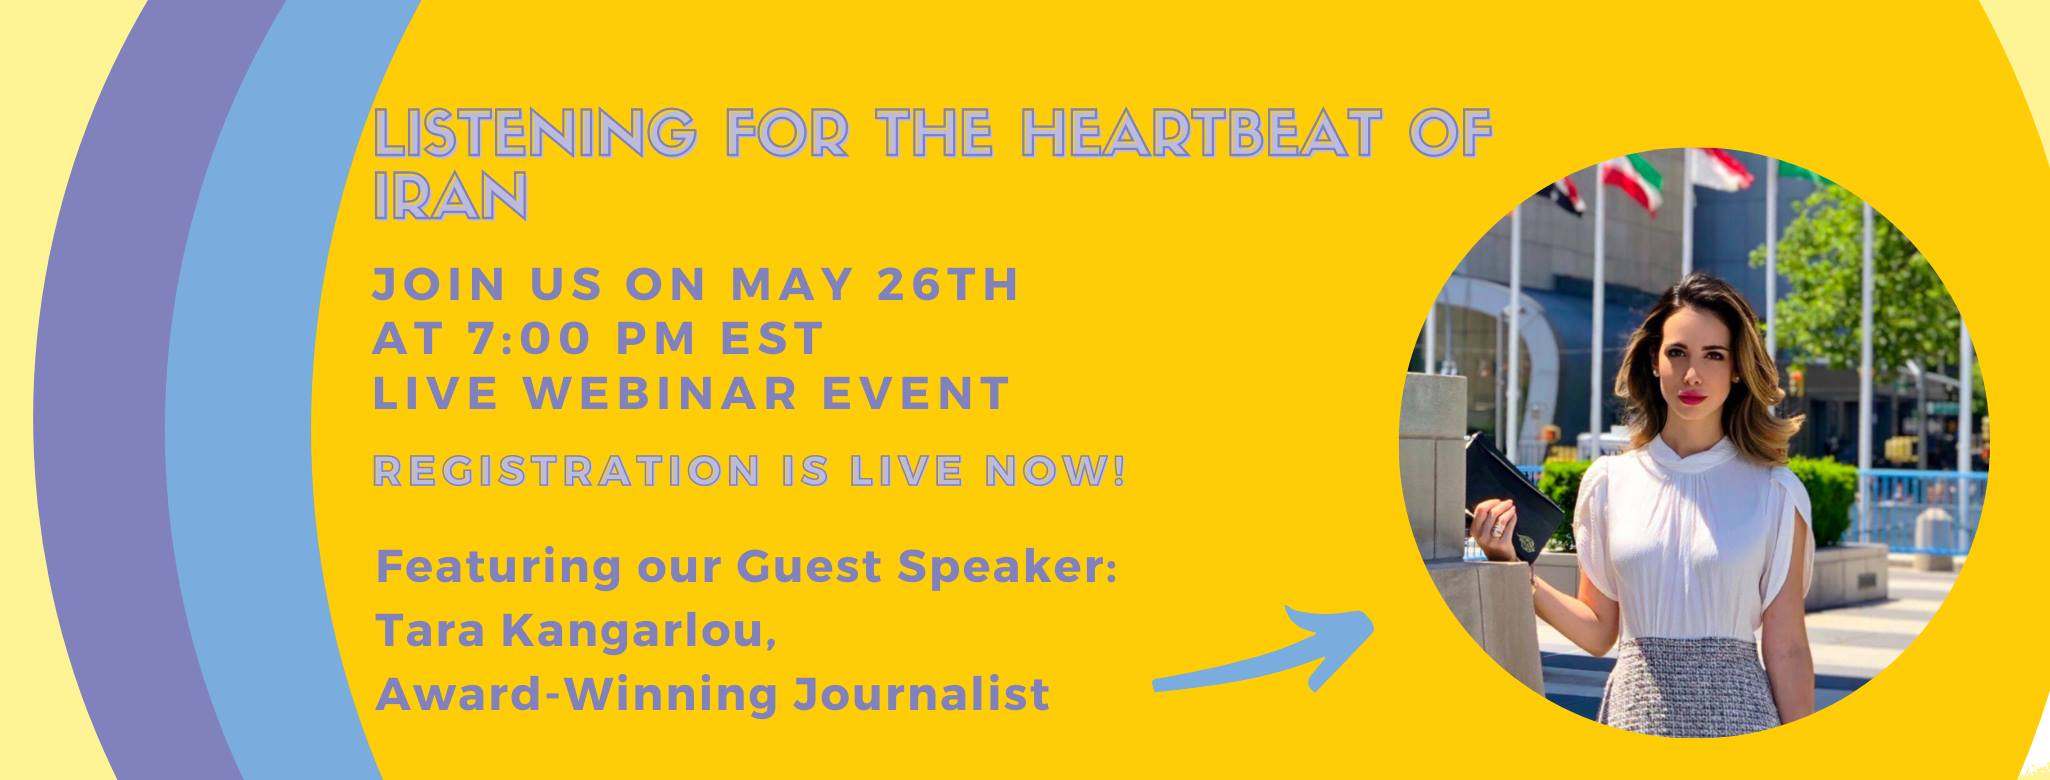 """Click here to register for the presentation """"Listening for the Heartbeat of Iran"""" by Tara Kangarlou"""